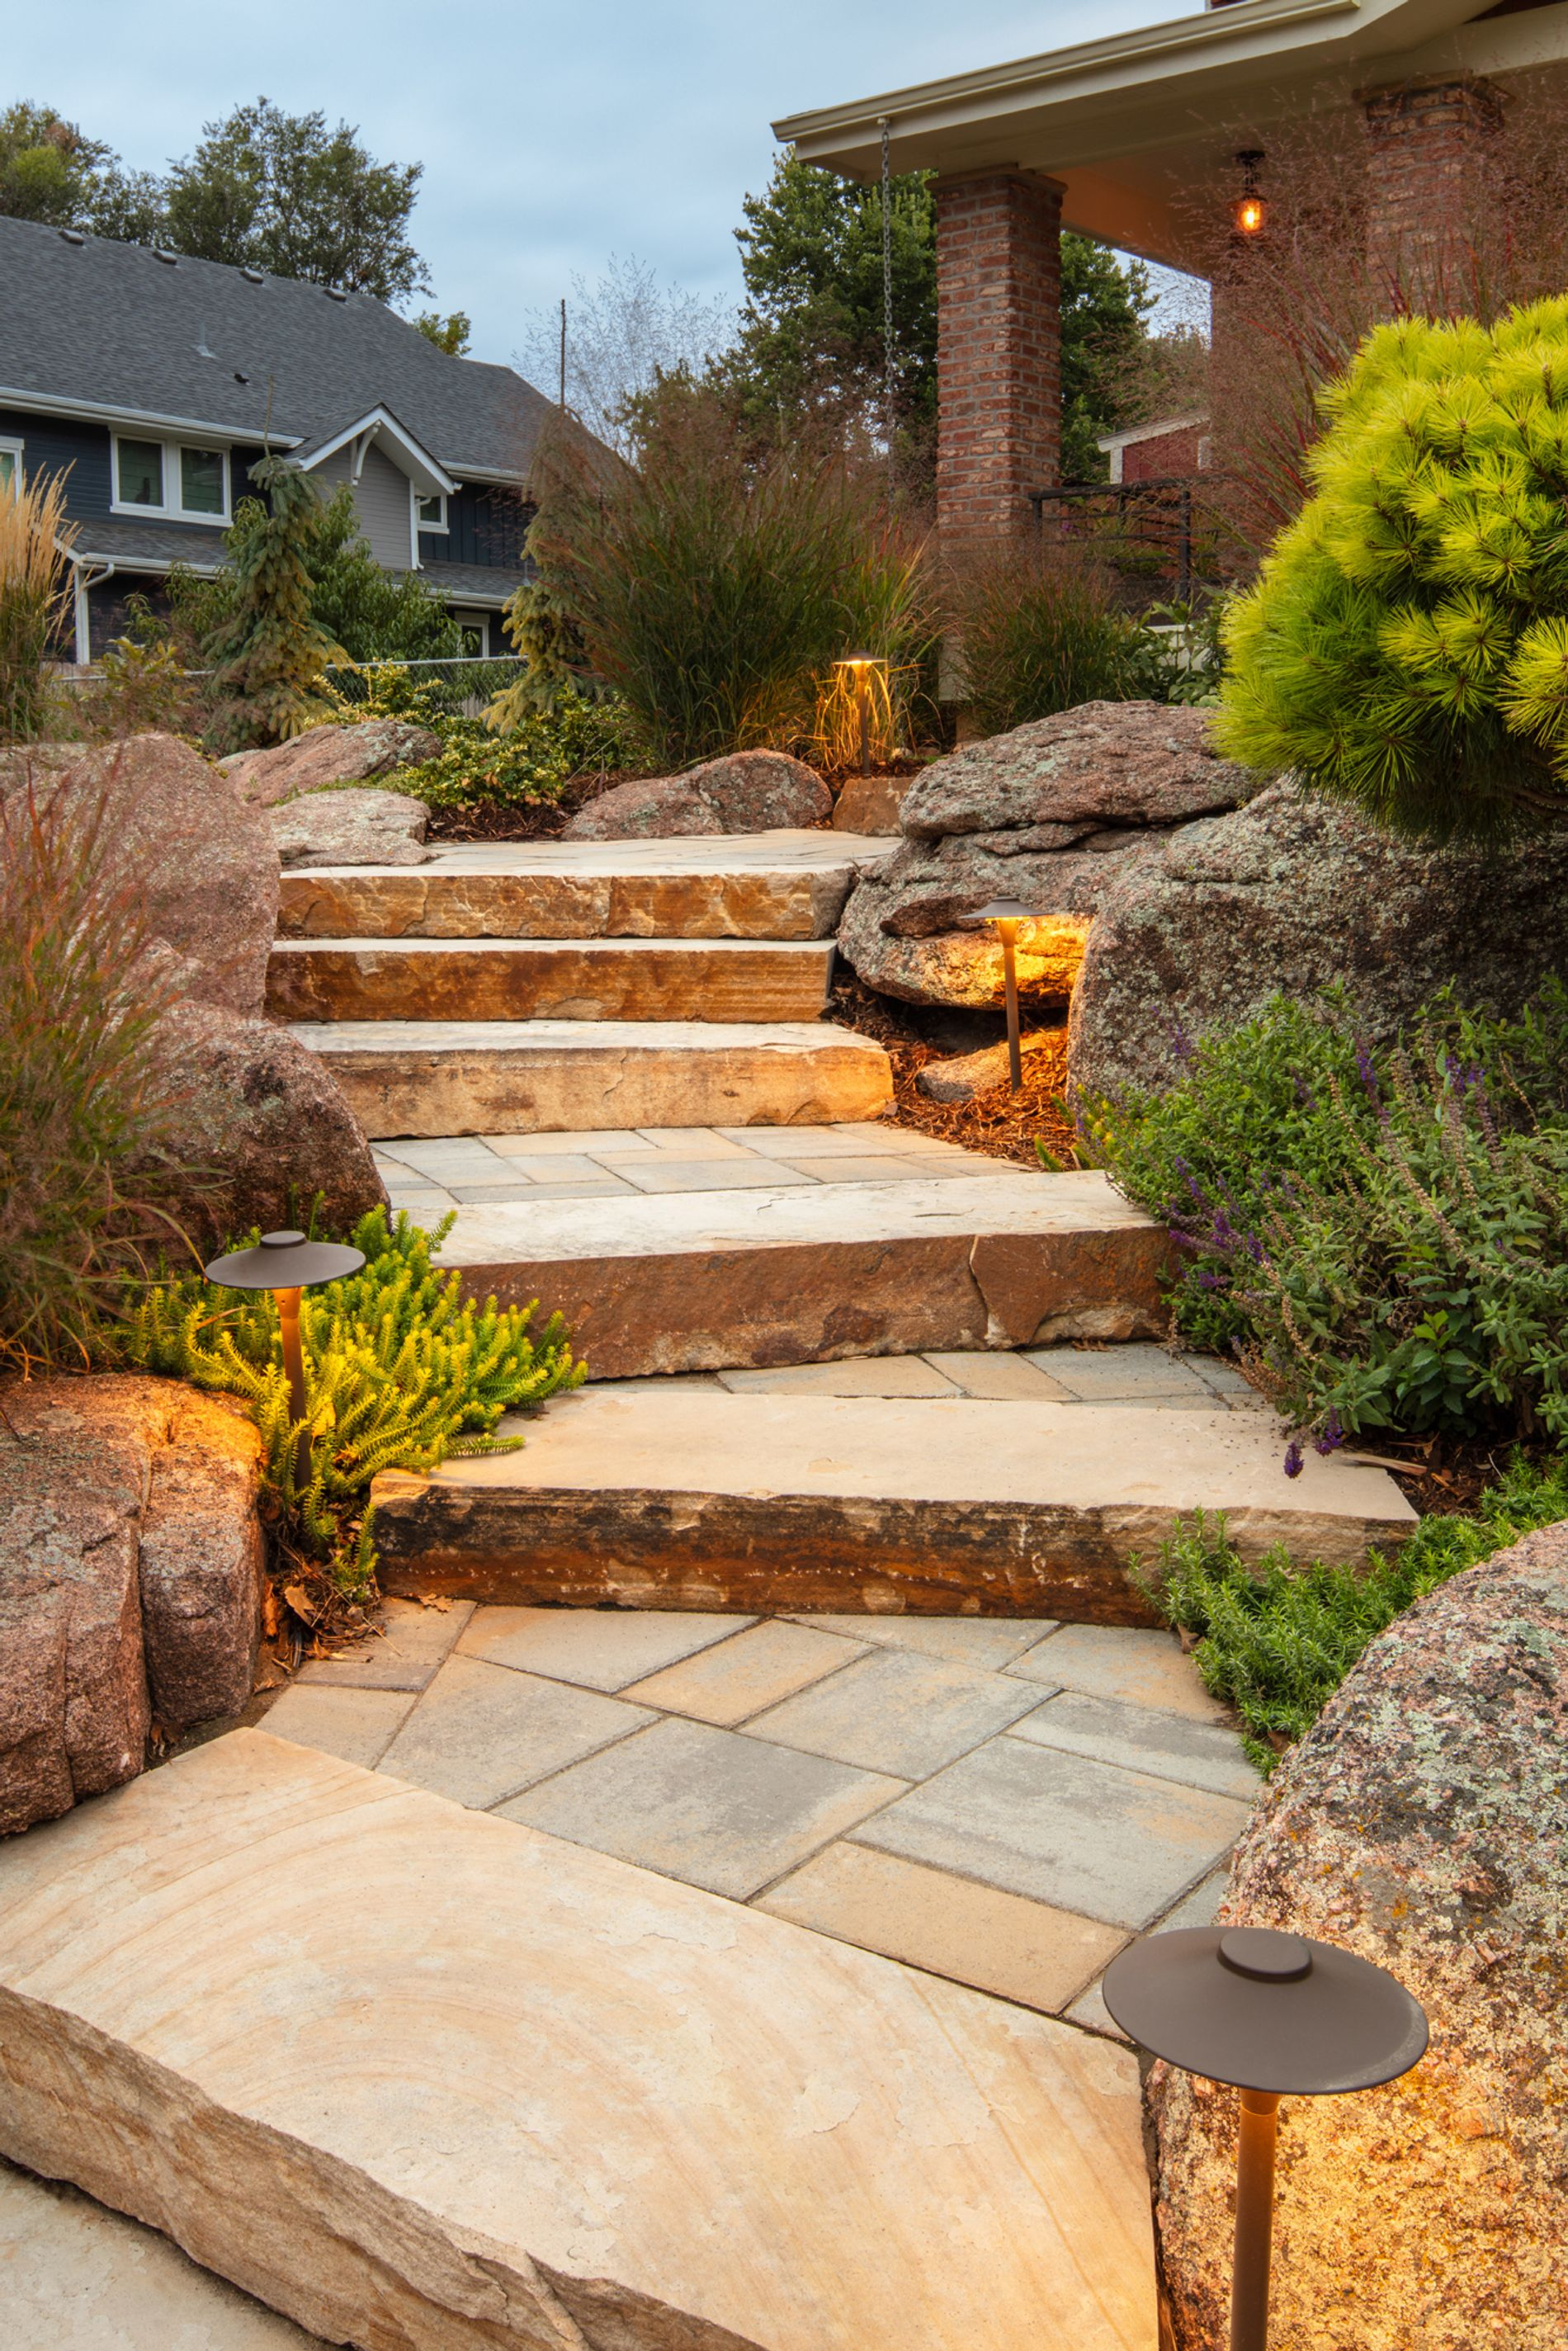 Path lights illuminate sandstone staircase